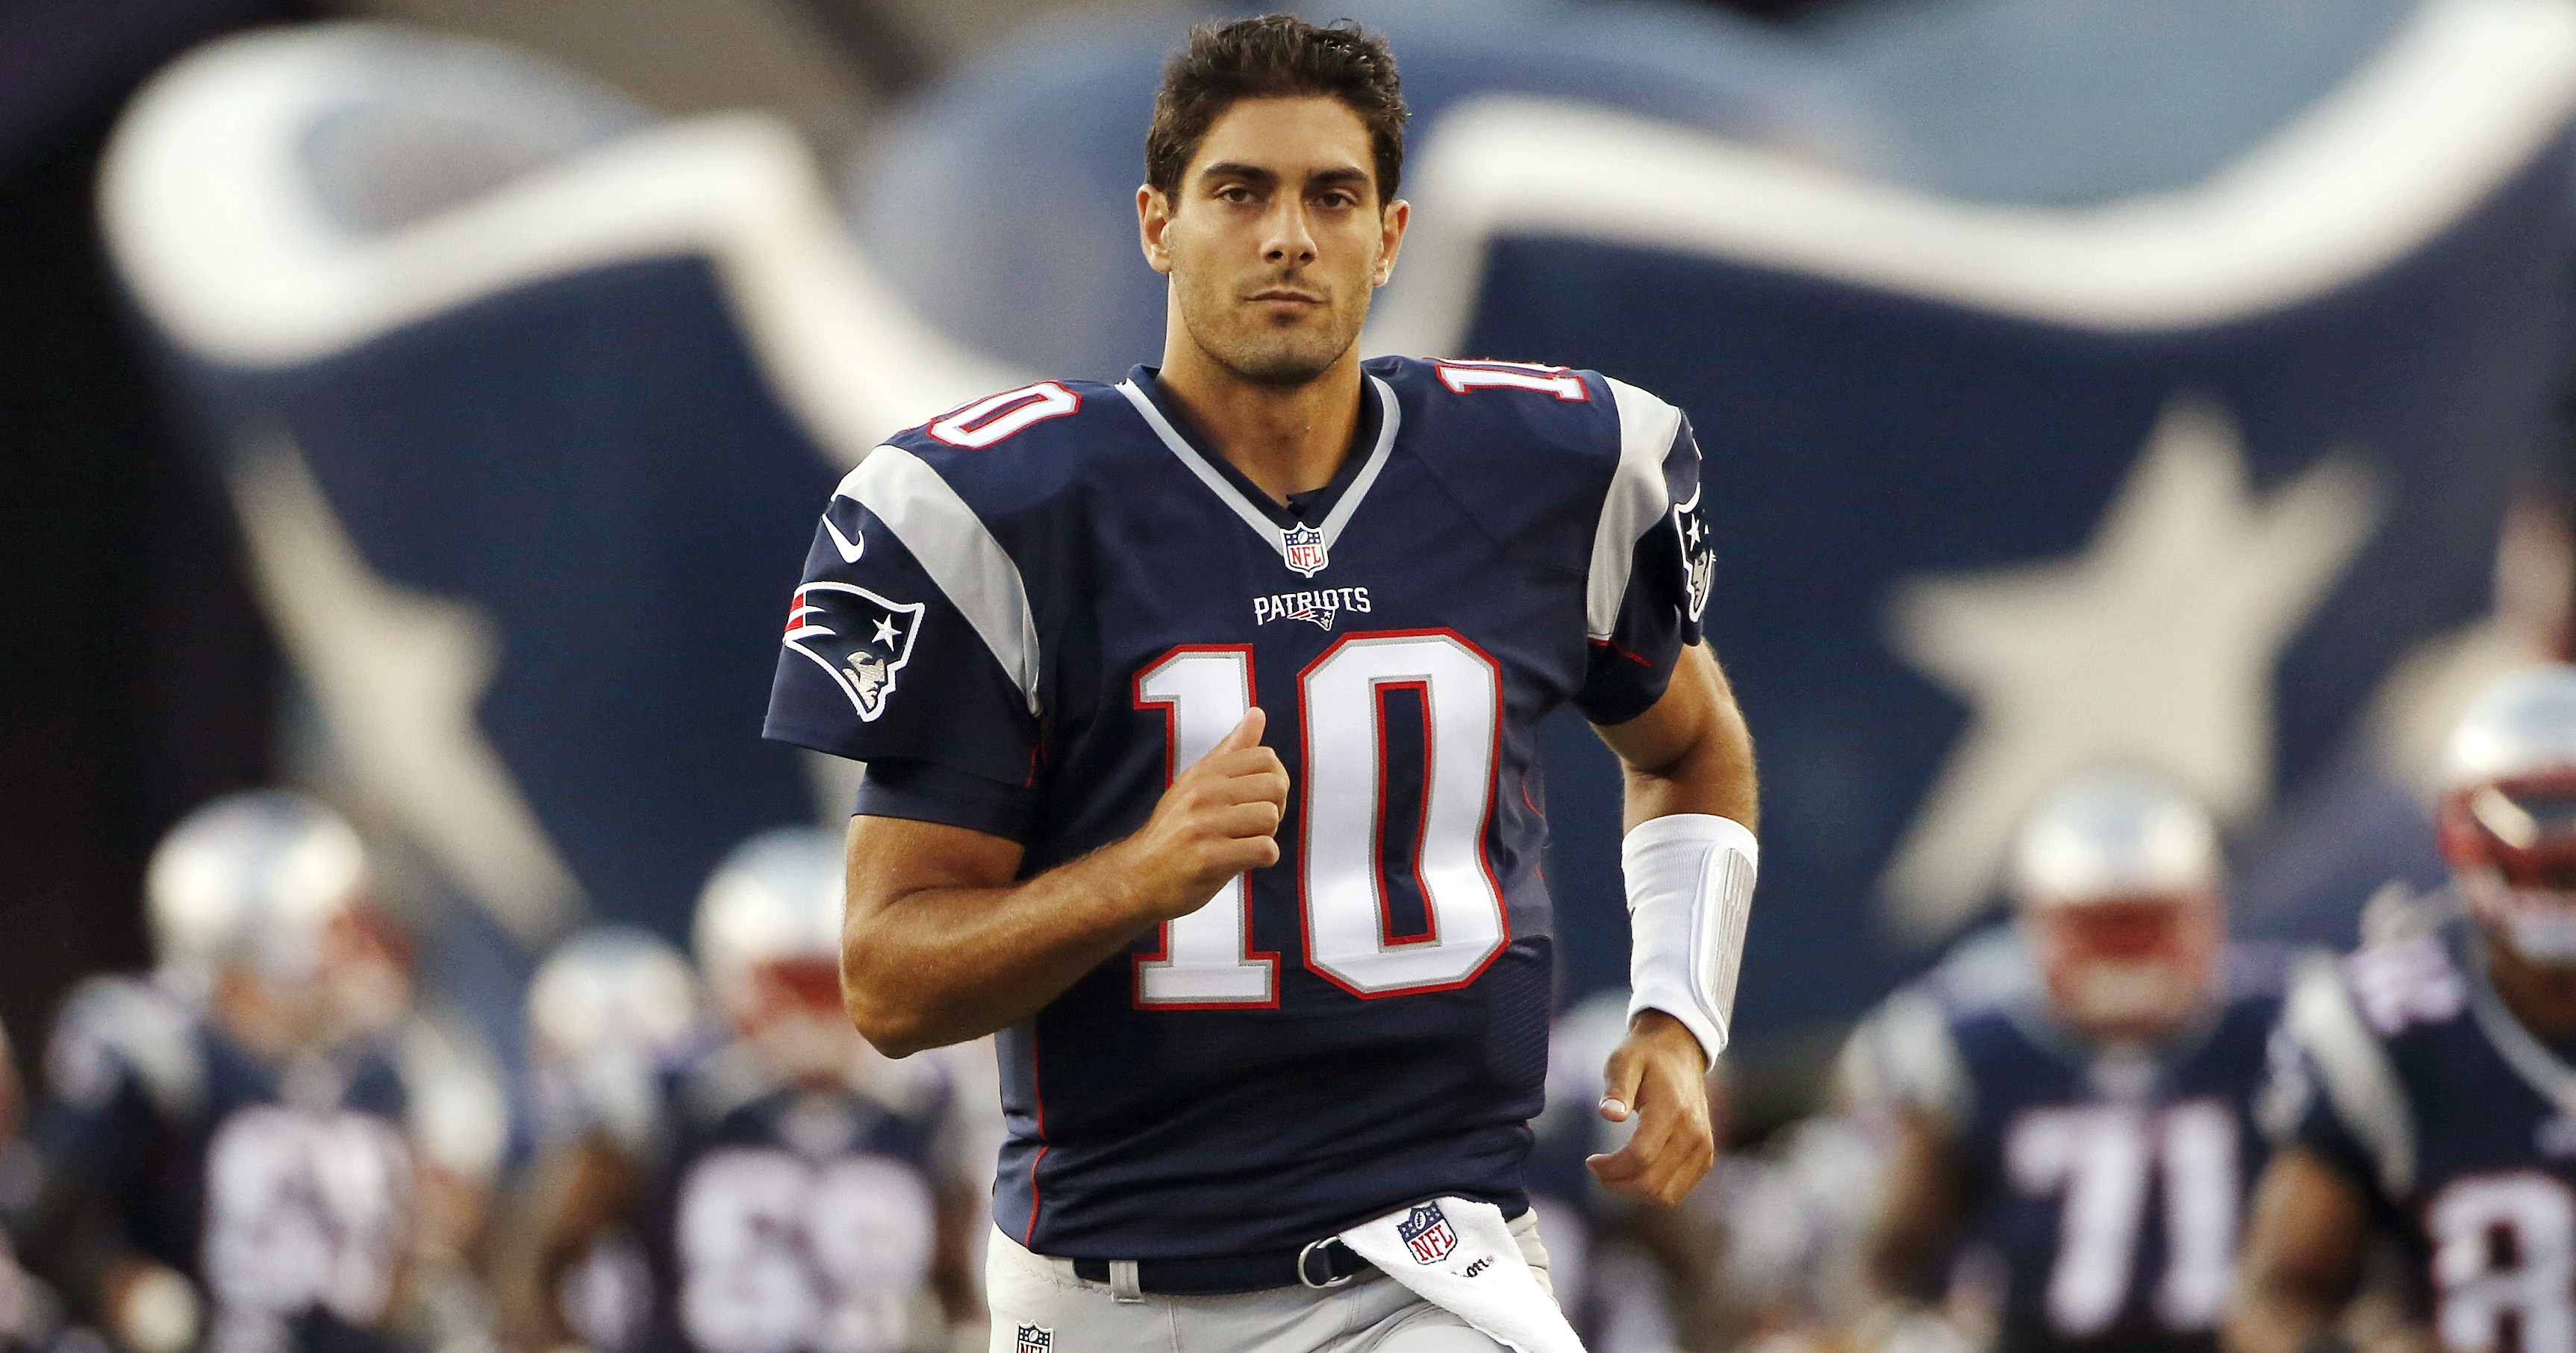 Jimmy Garoppolo I Got Serious Game On and Off the Field Jimmy Garoppolo used his magnetic force Saturday night to connect with a hot blonde and no